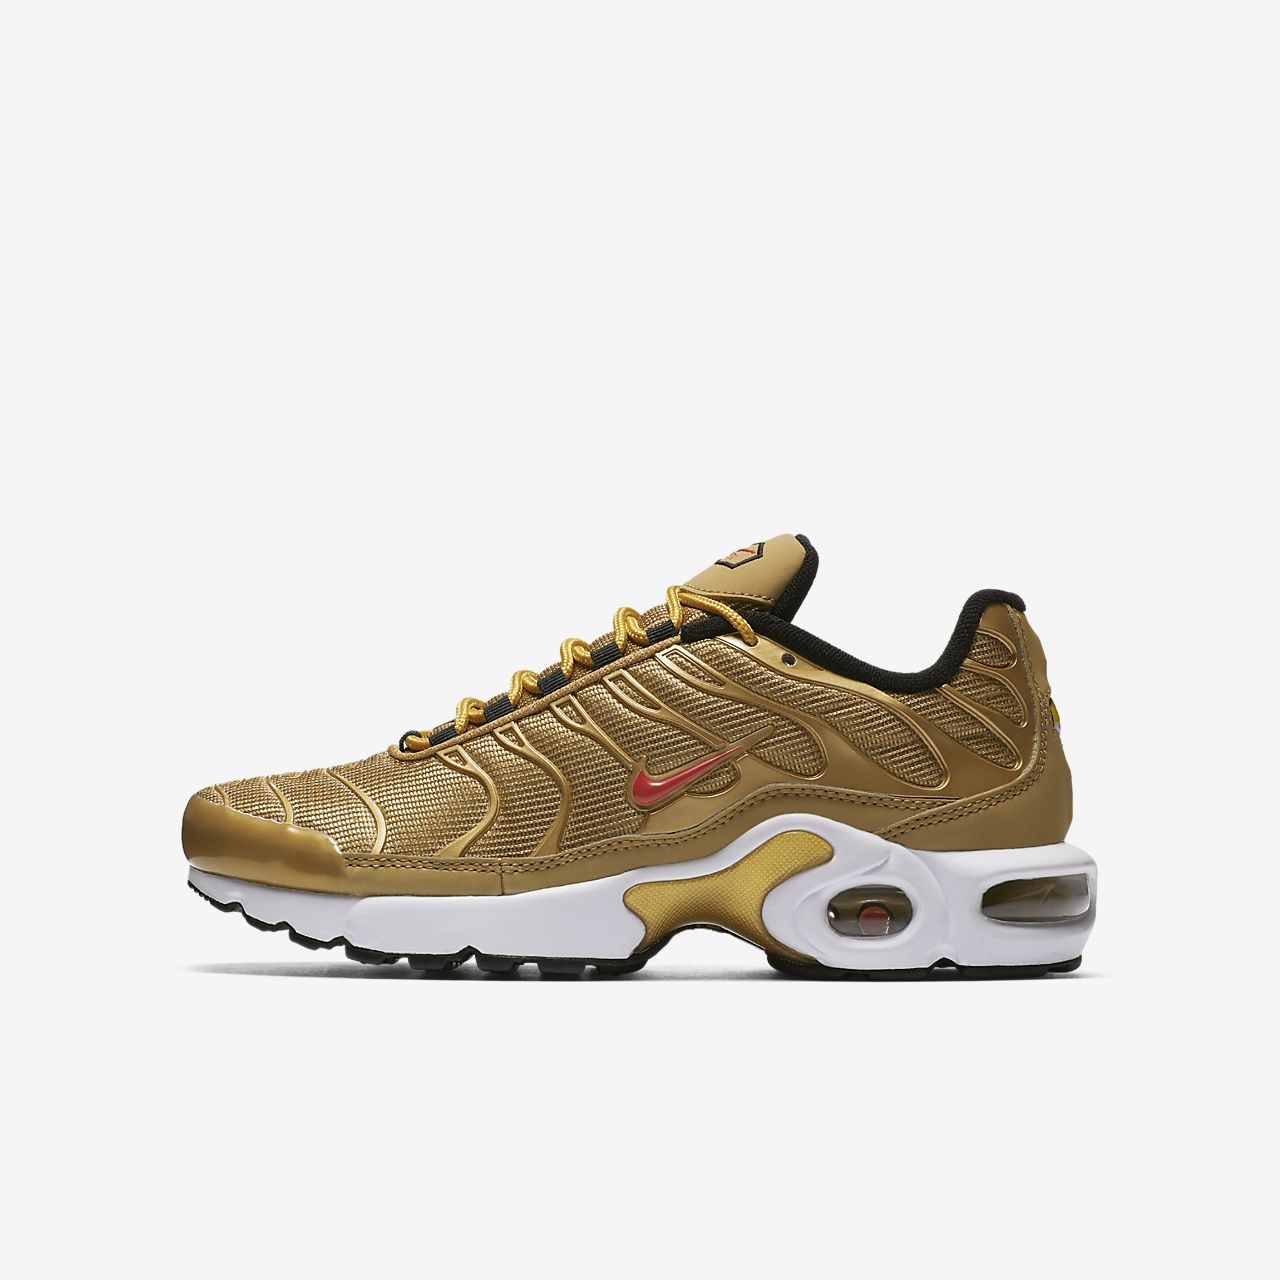 Nike AIR MAX TN oro